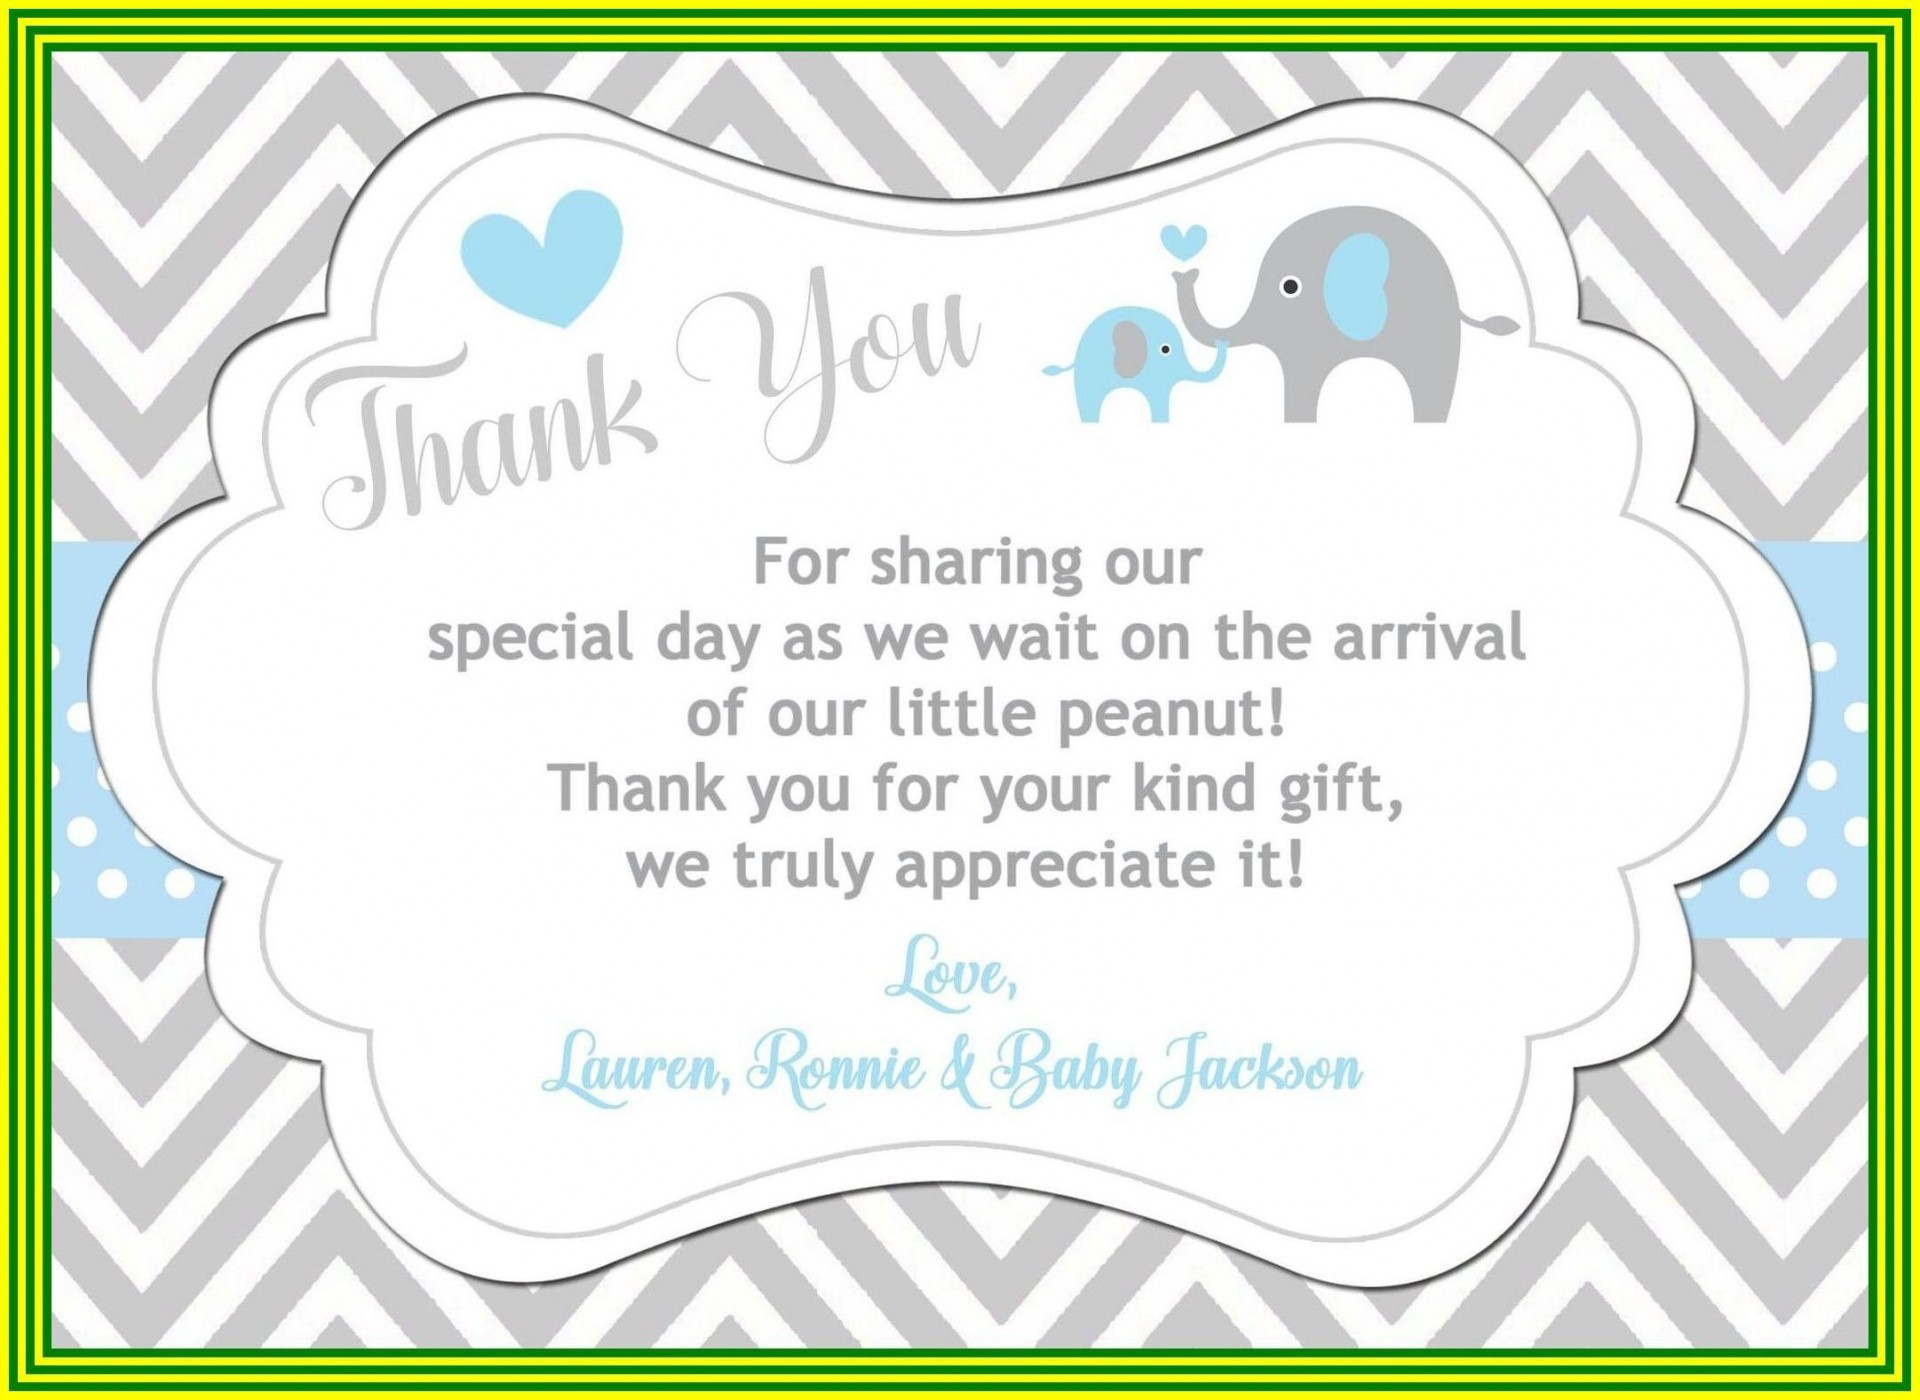 000 Archaicawful Thank You Note Template For Baby Shower Gift High Definition  Card Letter Sample1920